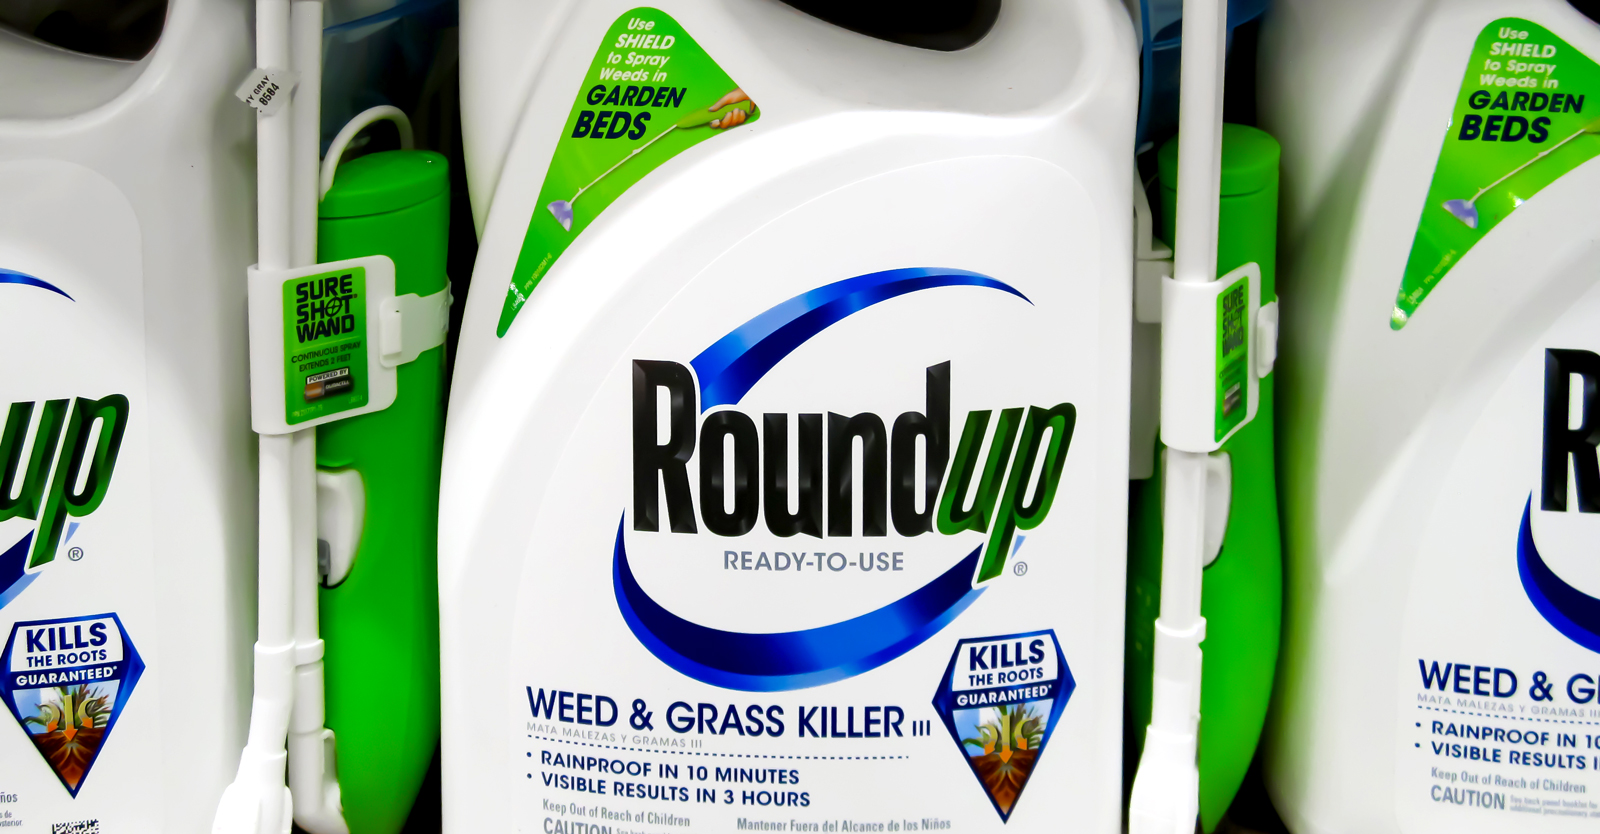 roundup-weedkiller-contains-hidden-ingredients-lethal-to-bees,-study-shows-•-children's-health-defense